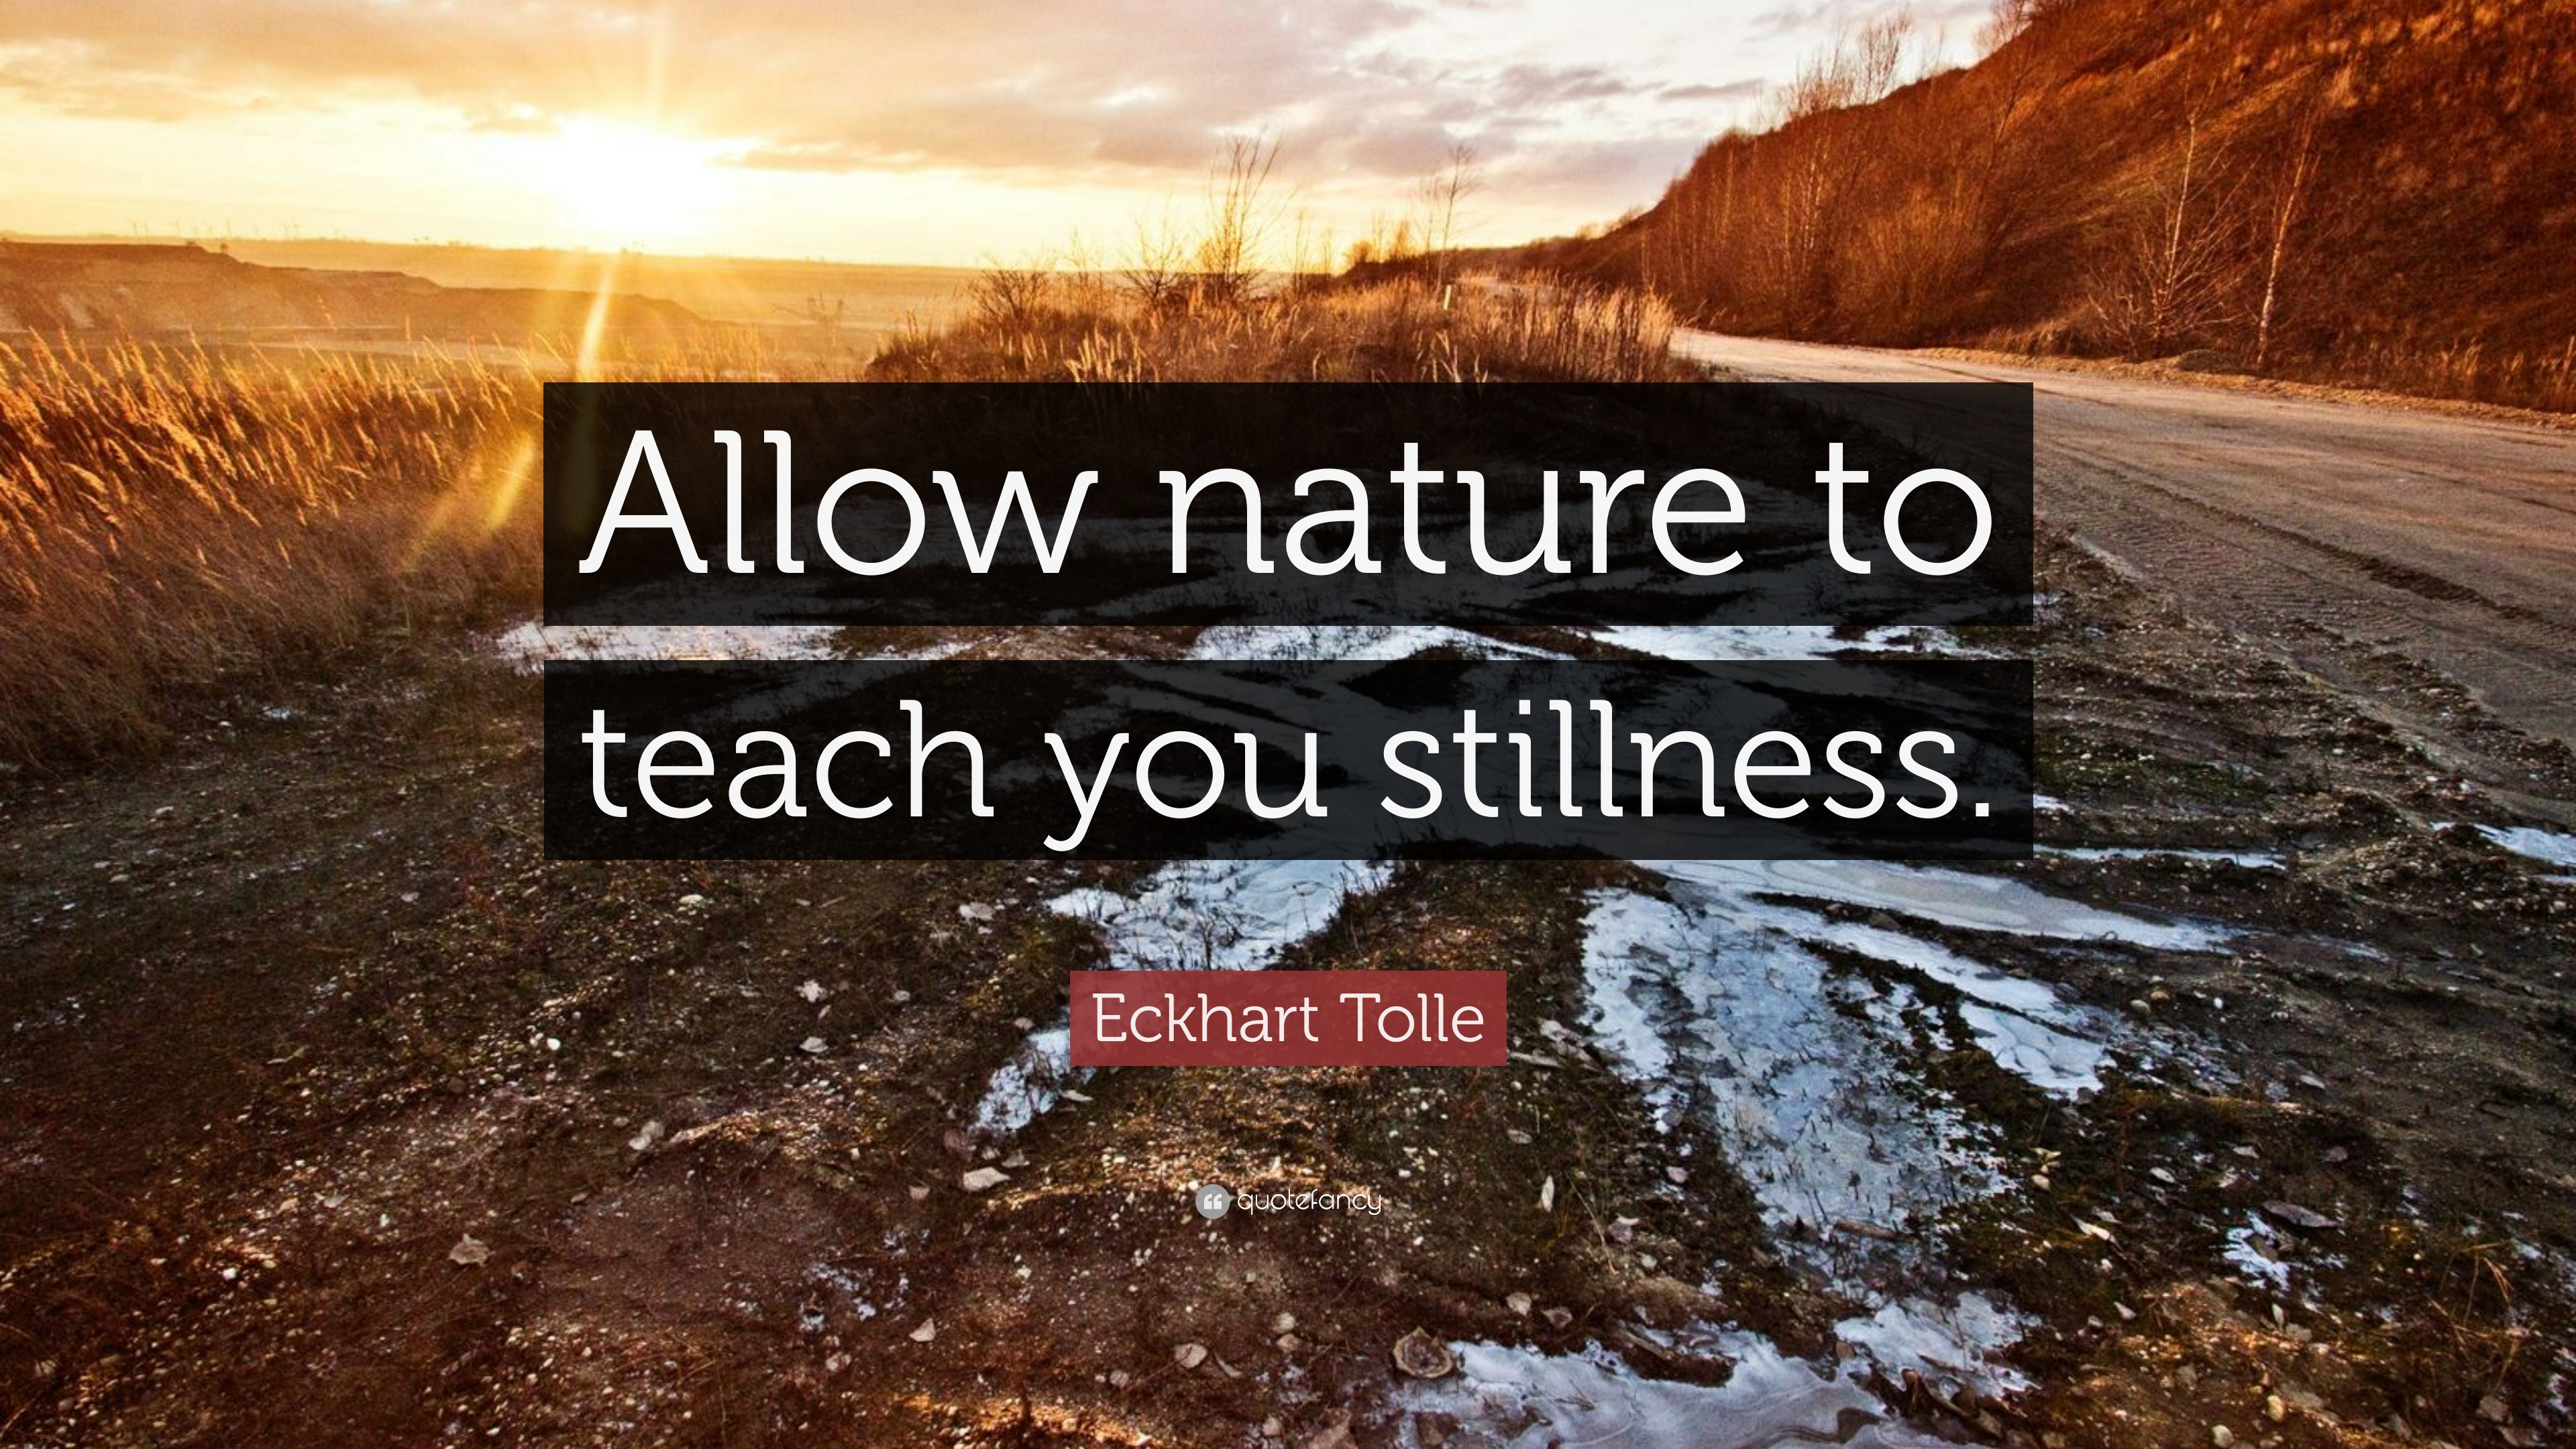 140203-Eckhart-Tolle-Quote-Allow-nature-to-teach-you-stillness